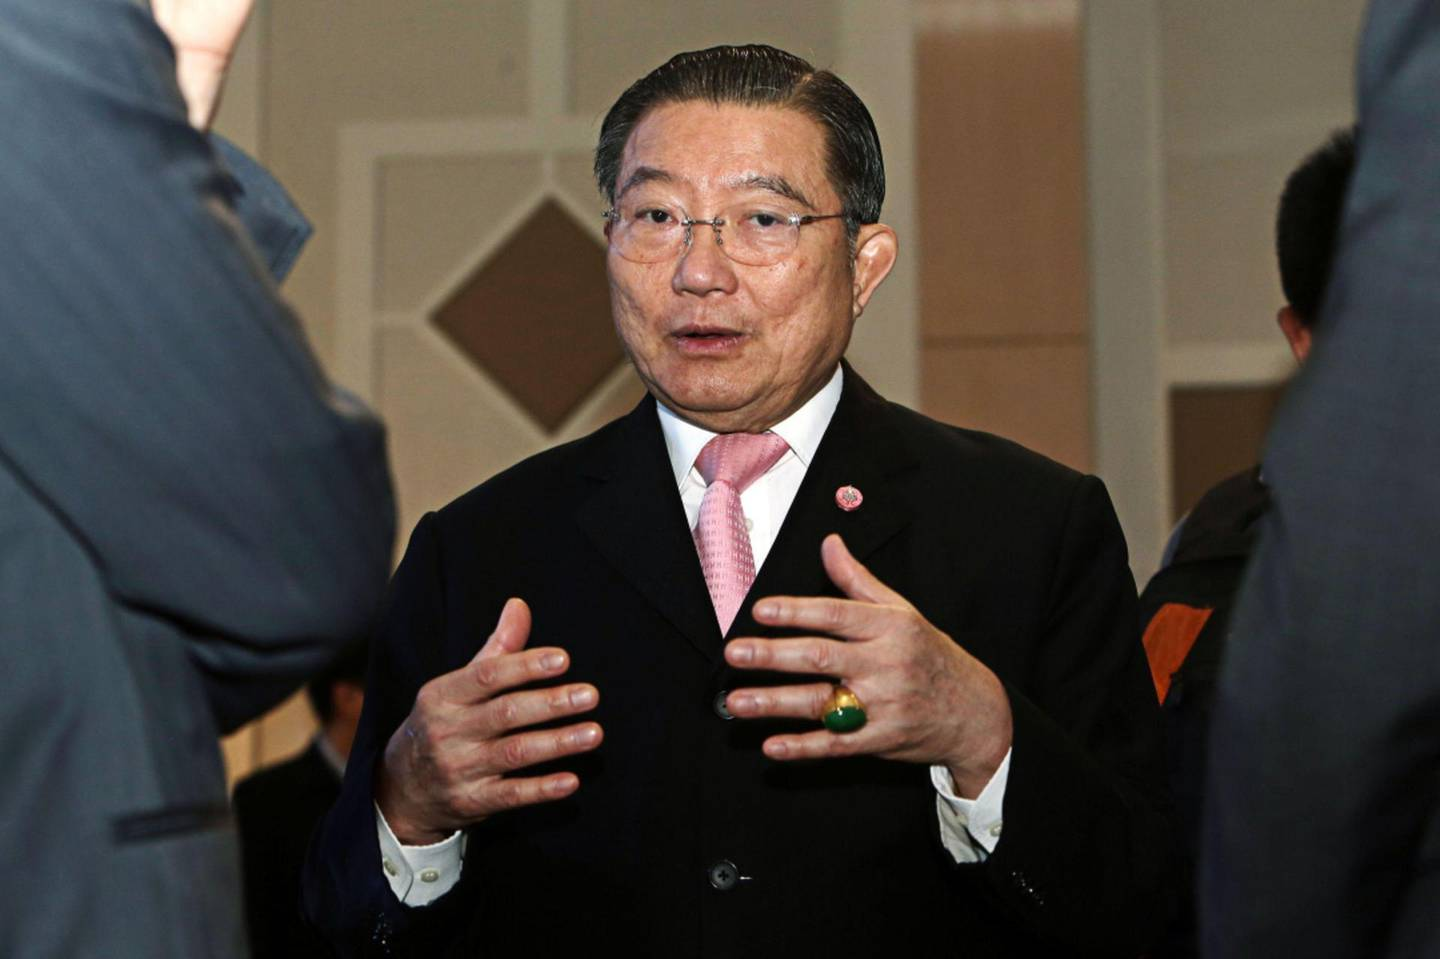 Billionaire Charoen Sirivadhanabhakdi, chairman of Thai Beverage Pcl, speaks with guests as he attends a charity event in Bangkok, Thailand, on Wednesday, Oct. 15, 2014. Charoen is Thailand's richest man with a $12.7 billion fortune, according to the Bloomberg Billionaires Index. He controls an empire whose businesses span industries from beer to property development. Photographer: Dario Pignatelli/Bloomberg *** Local Caption *** Charoen Sirivadhanabhakdi